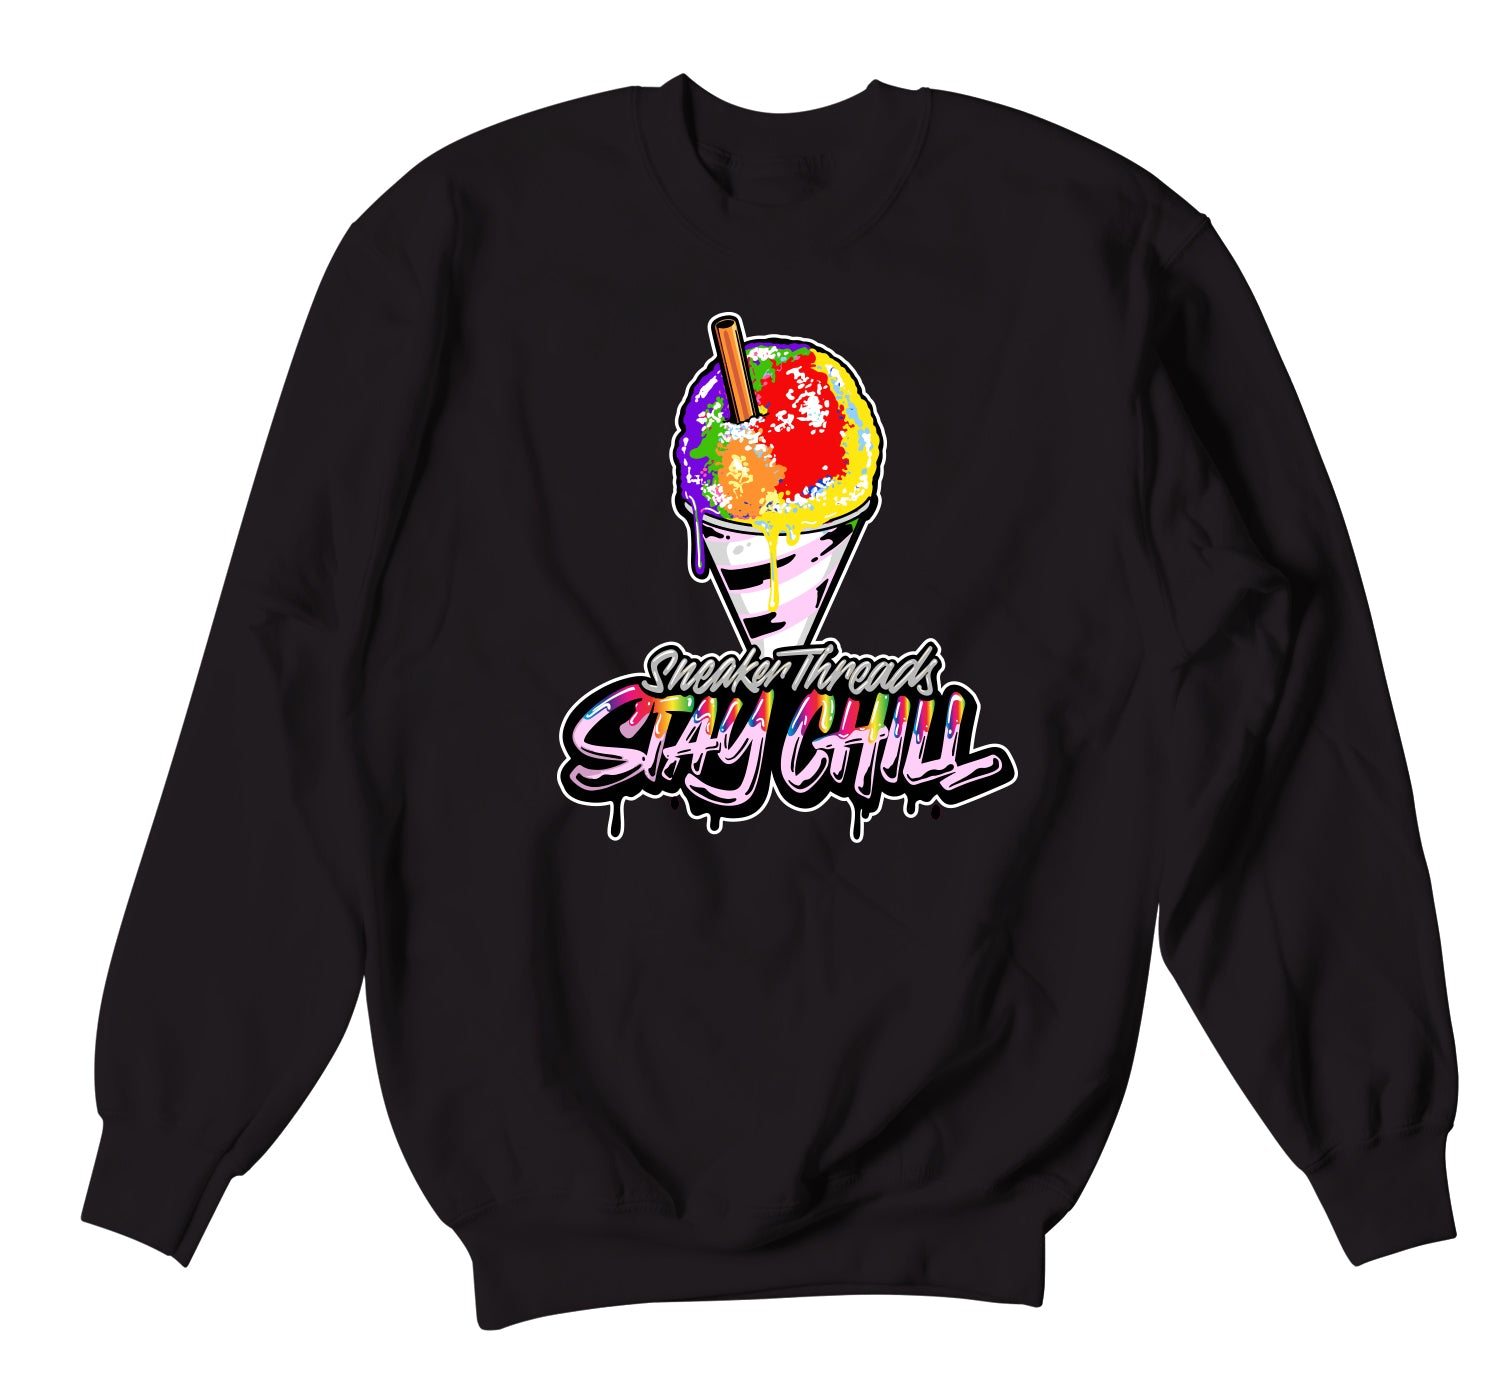 Jordan 1 Balvin Sweater - Stay Chill - Black